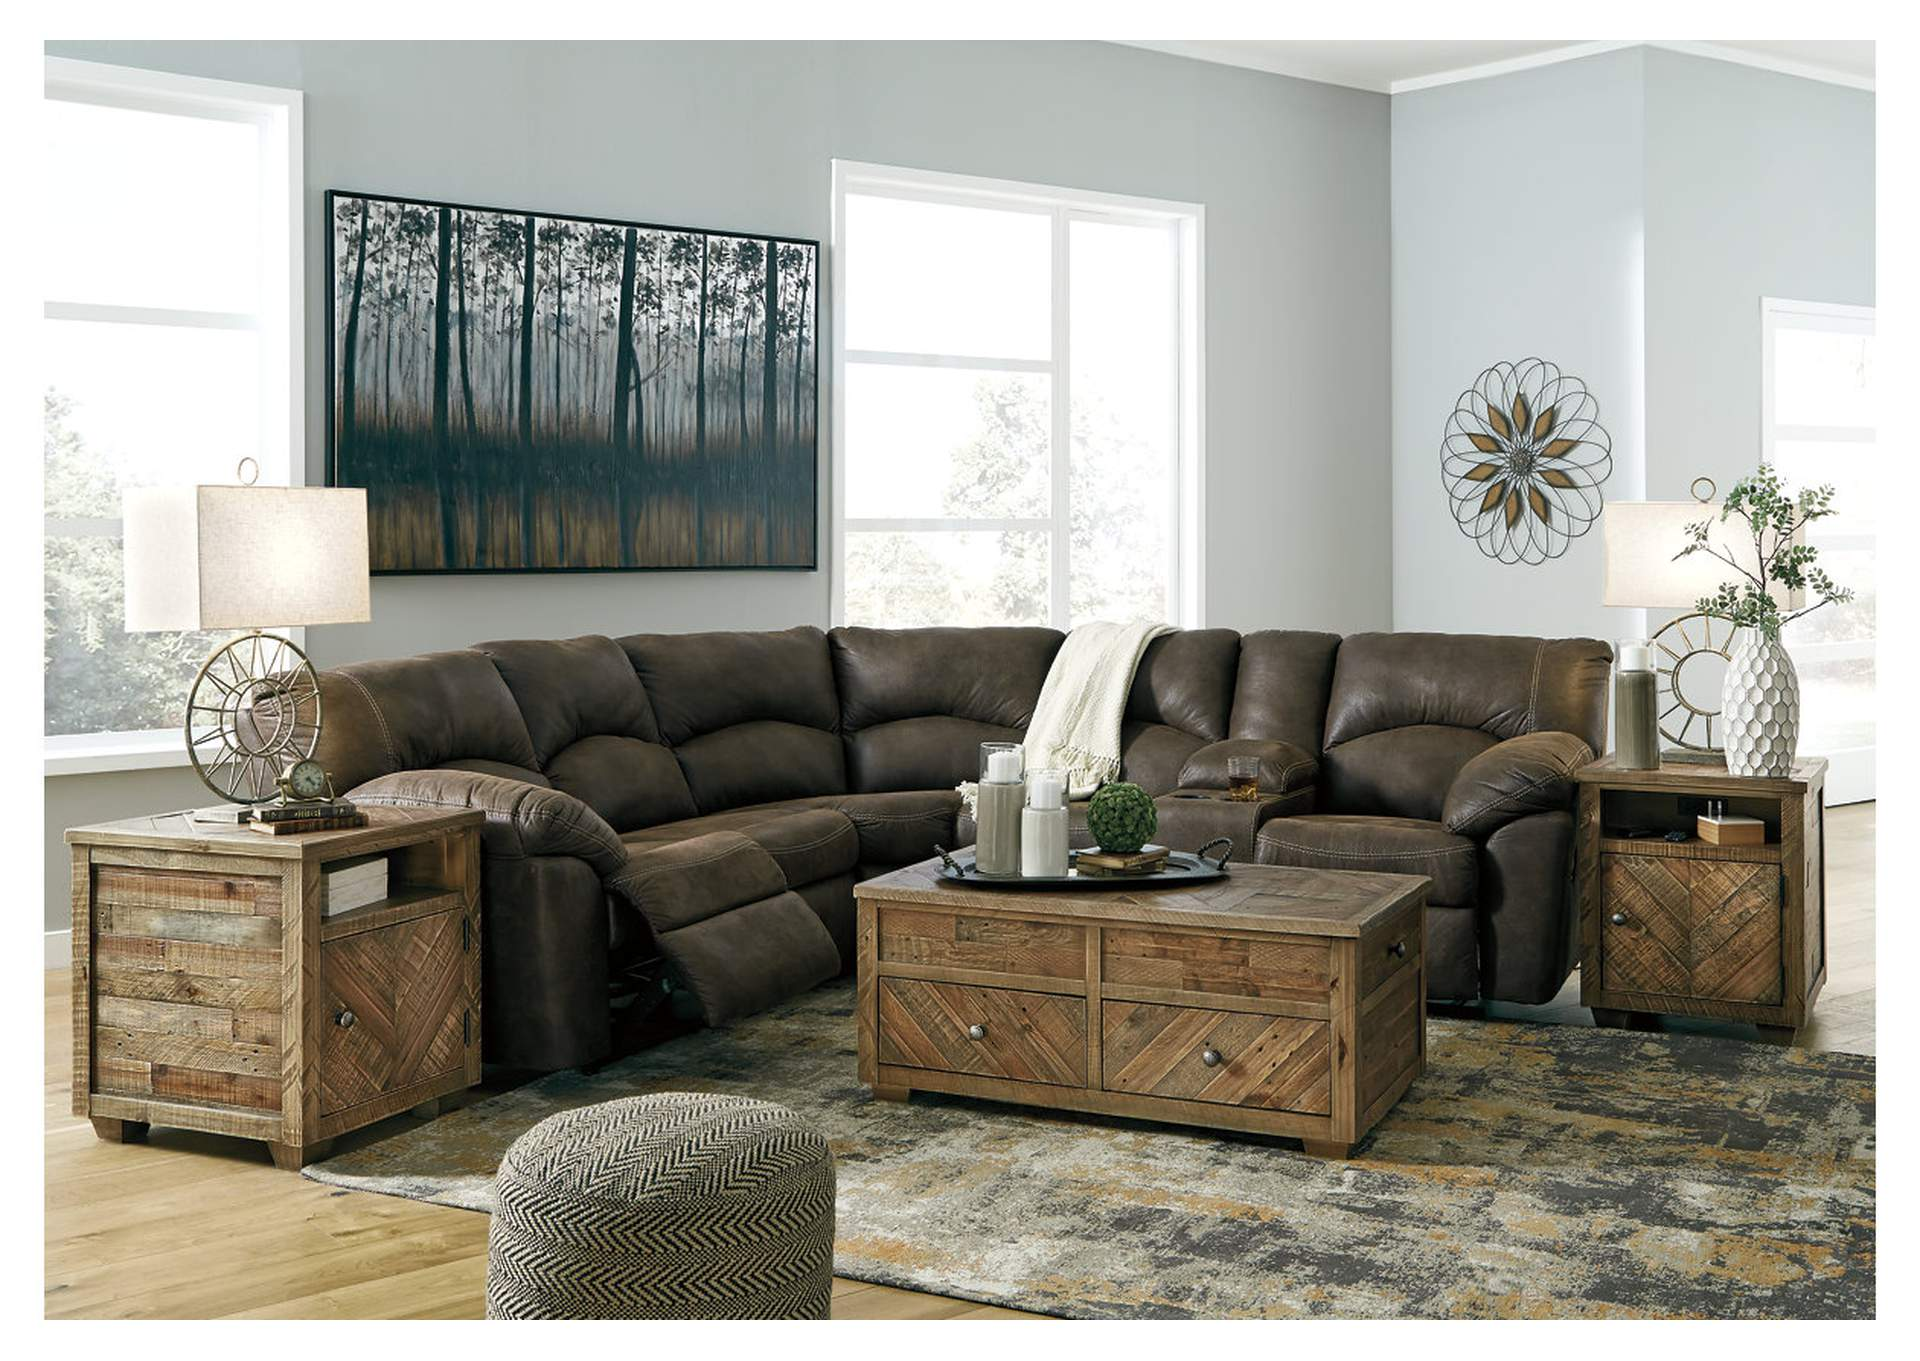 Tambo Brown Sectional,Signature Design By Ashley